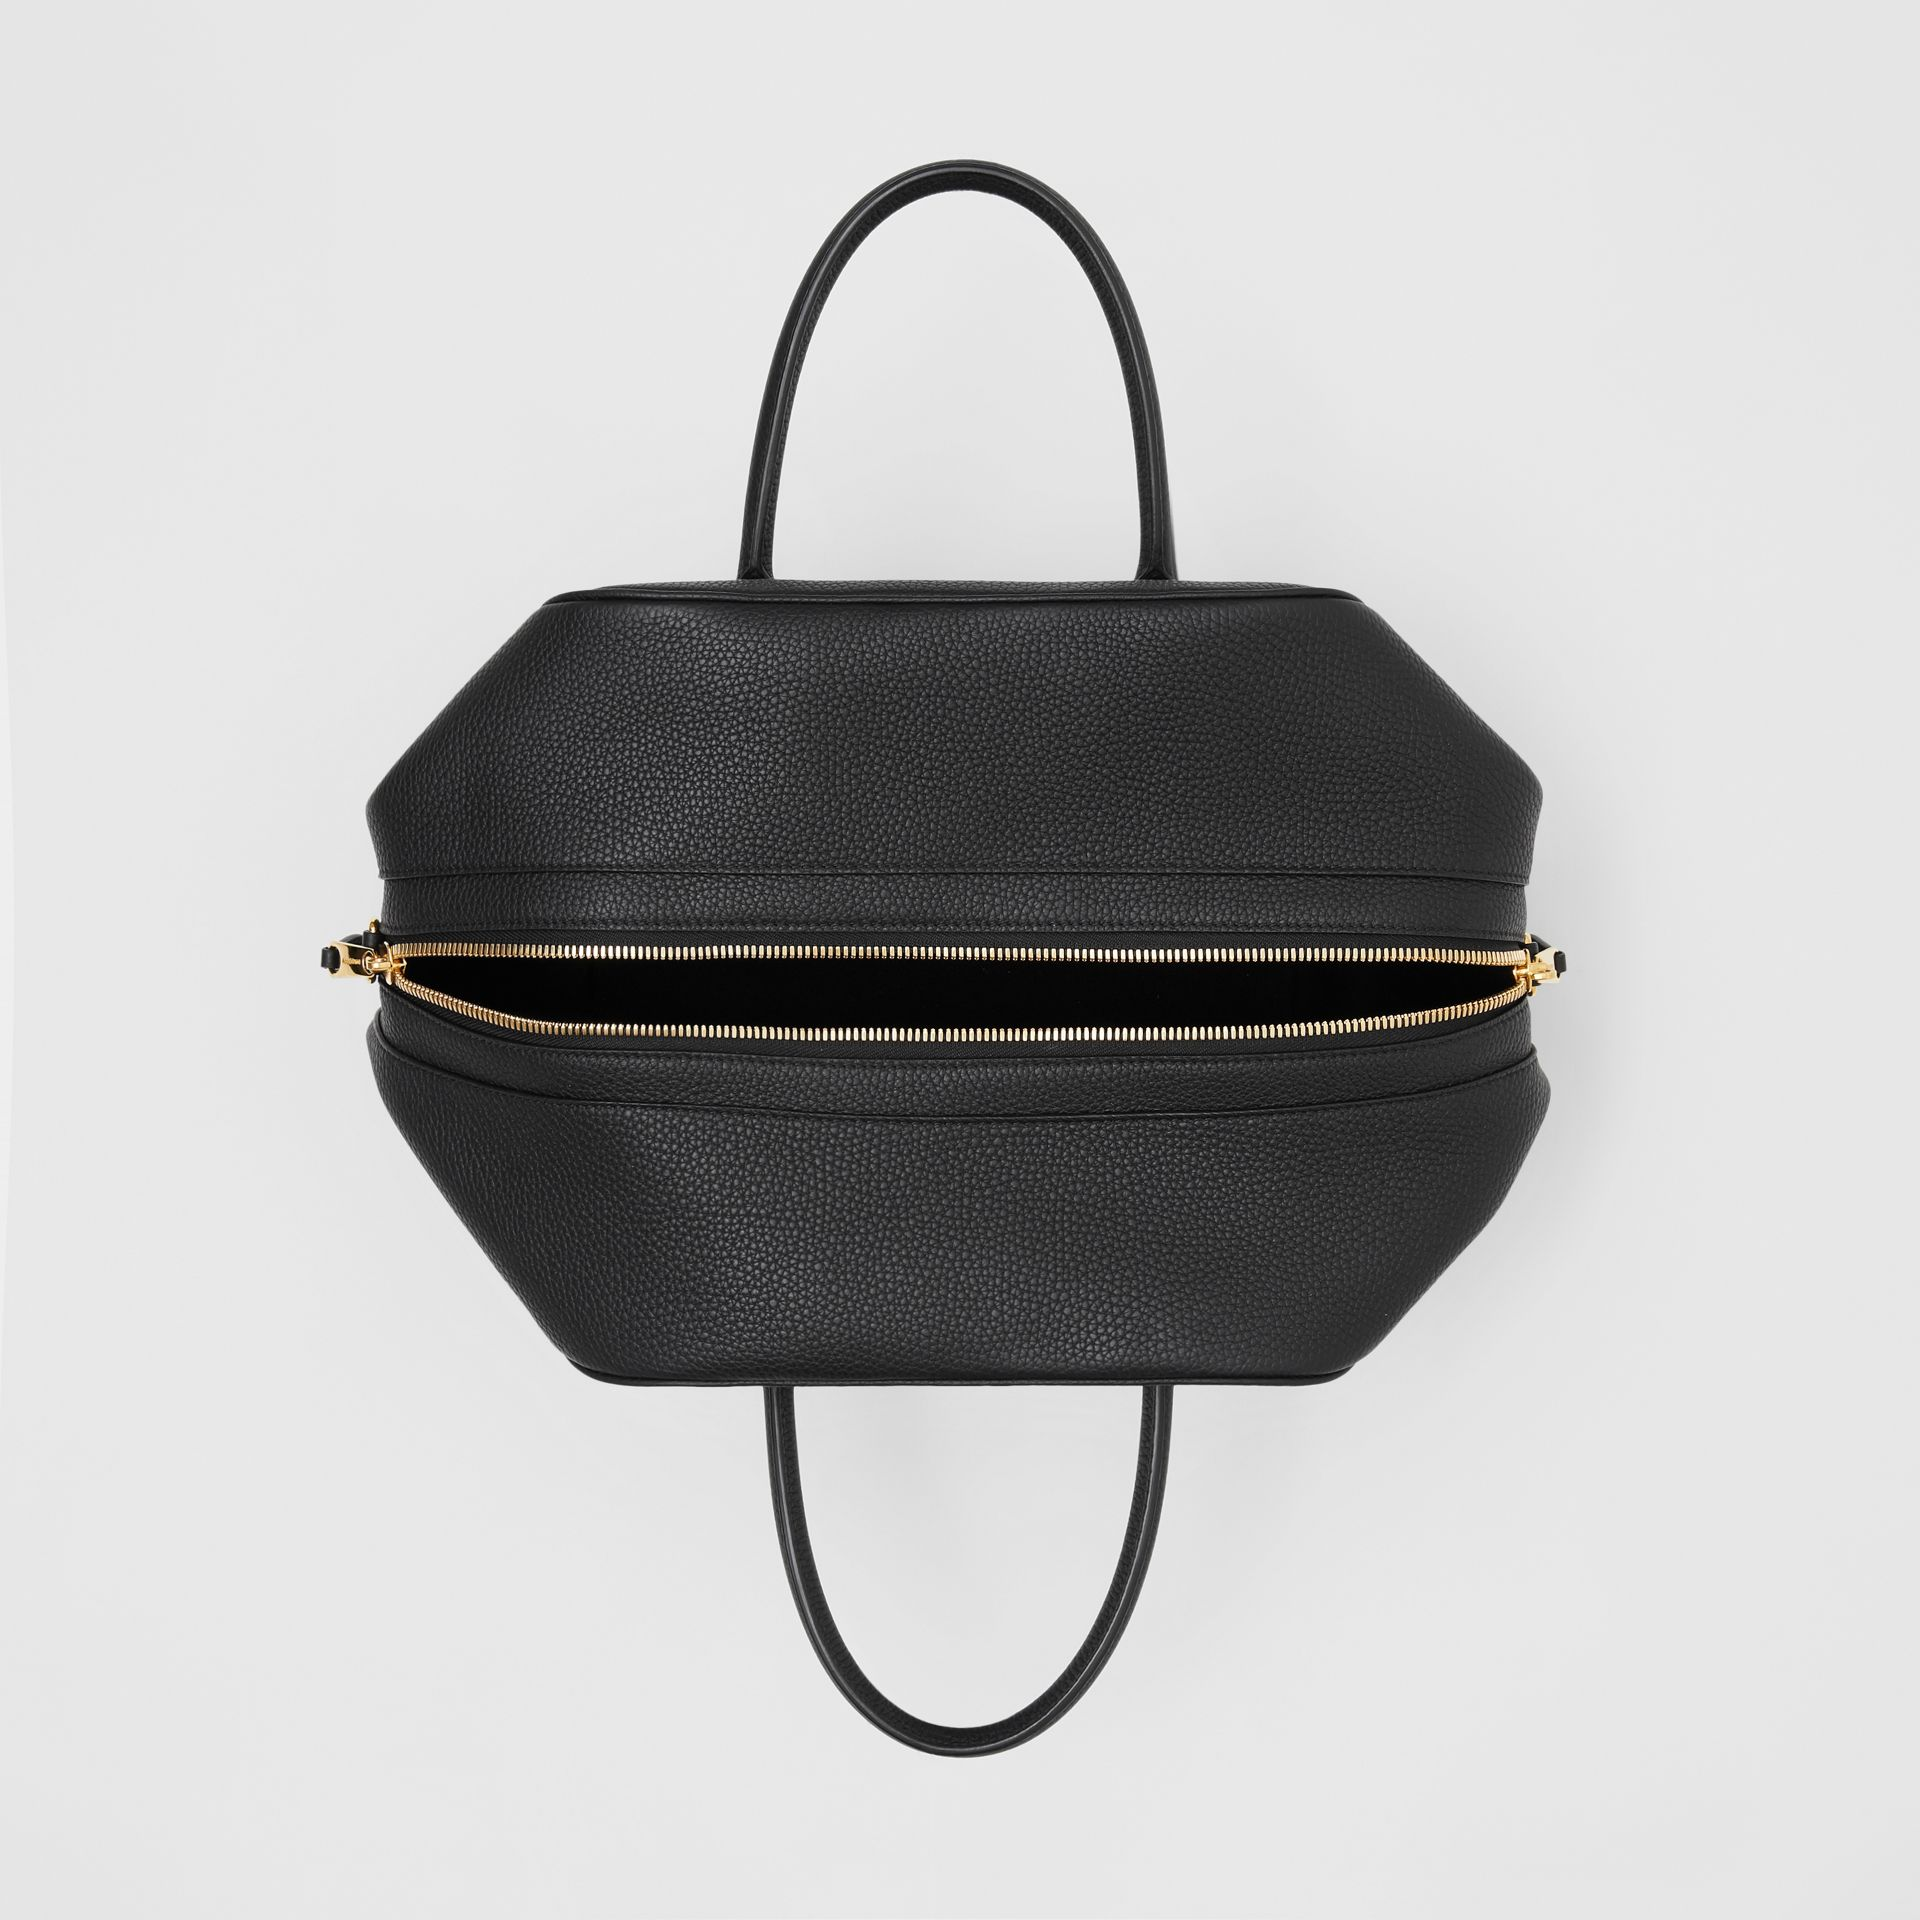 Medium Leather Cube Bag in Black - Women | Burberry Australia - gallery image 4